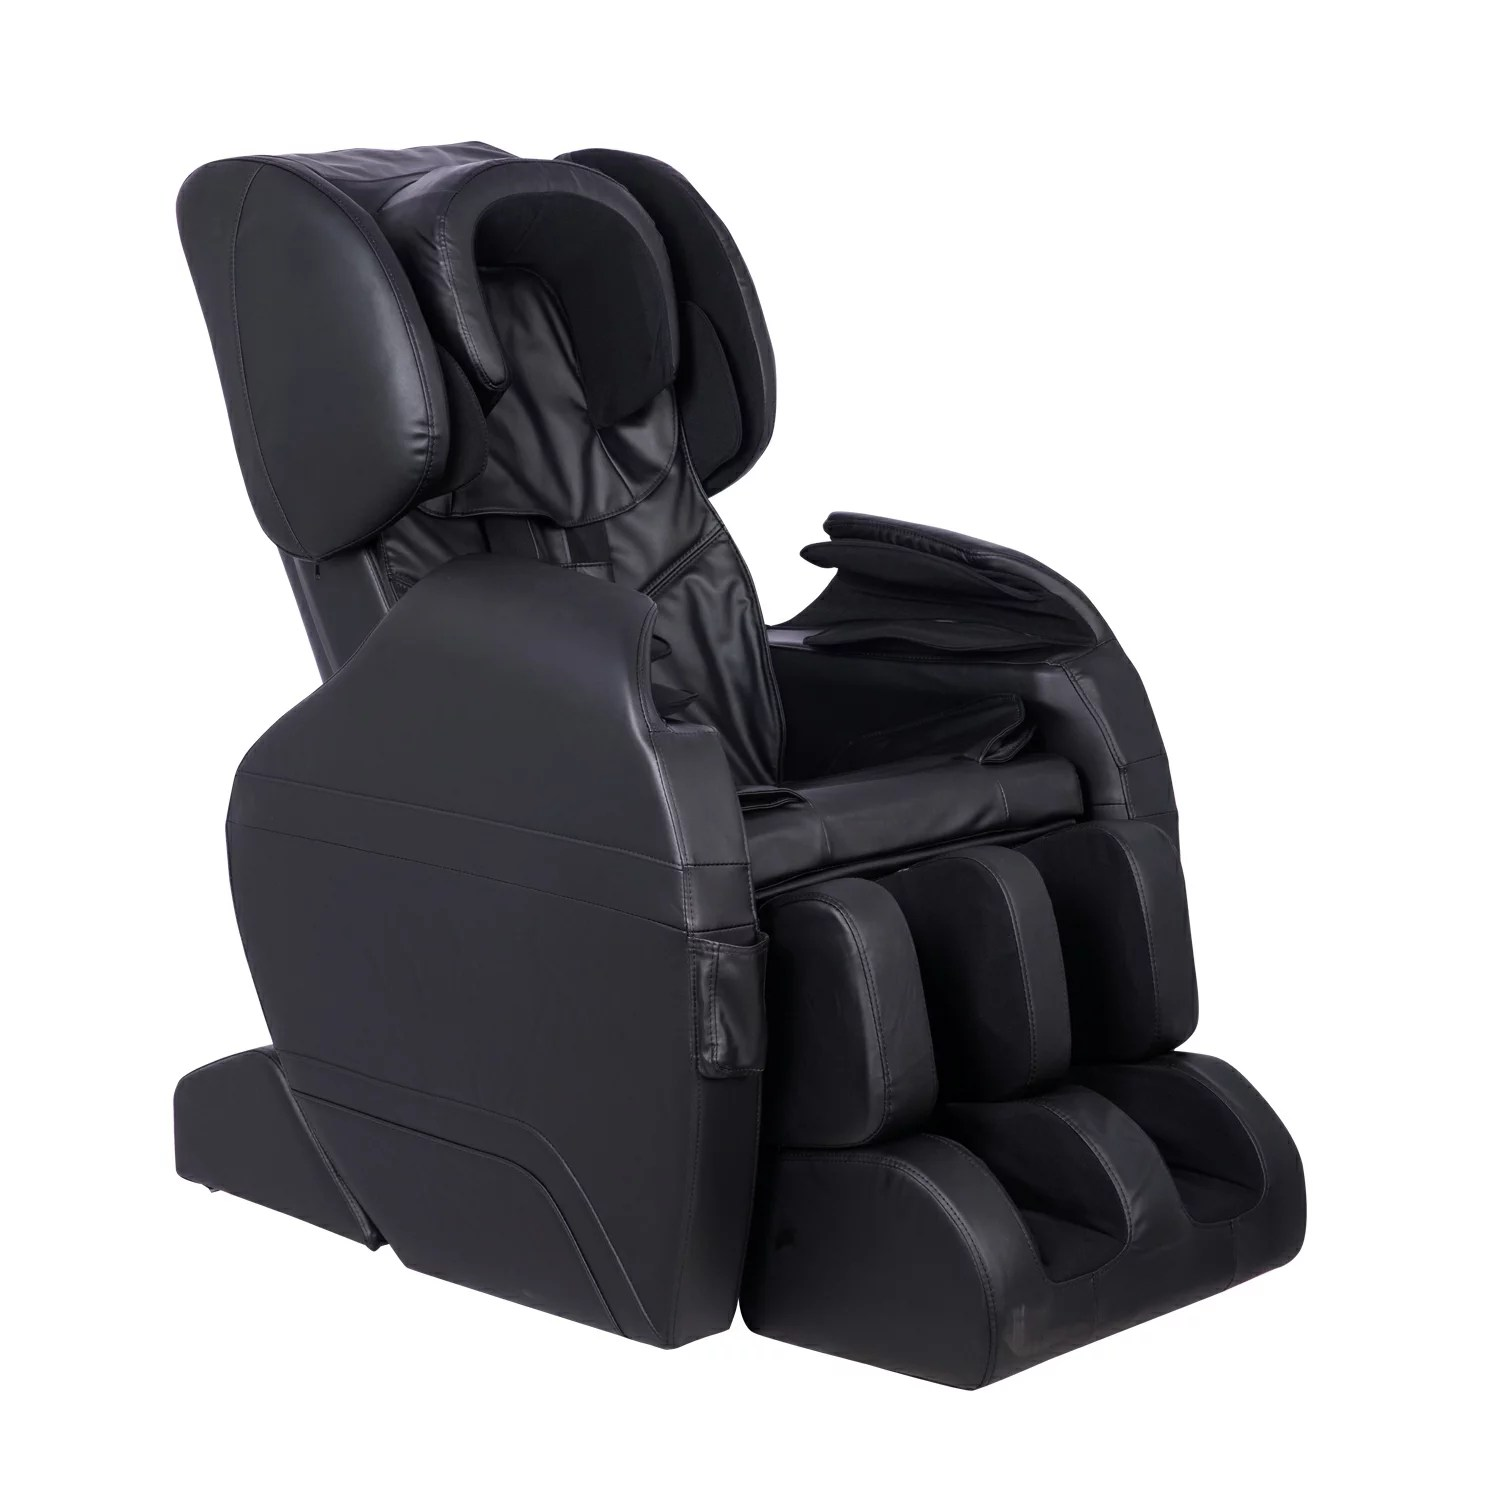 massage chair with heat cheap banquet chairs mcombo electric fullbody shiatsu recliner stretched foot 8887 0